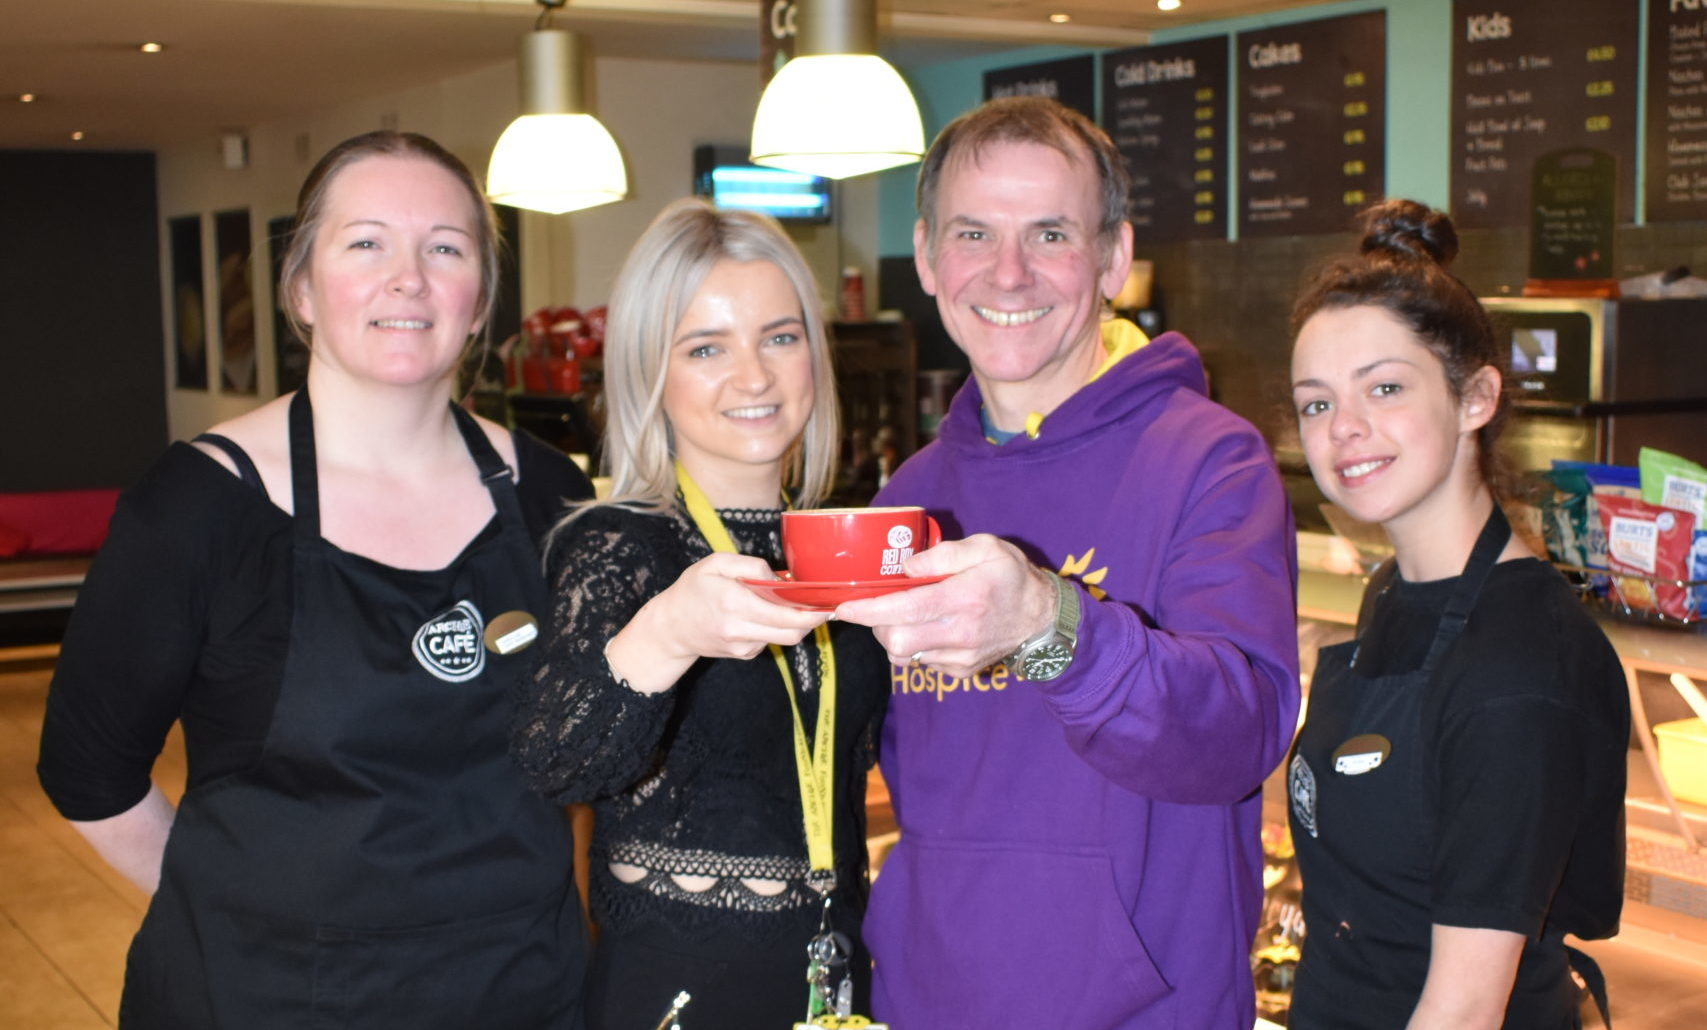 Dawn Cowie, Archie Foundation Fundraiser with Andrew Leaver, Highland Hospice Head of Fundraising and cafe staff members Eilish McGlinn and Caroline Black.